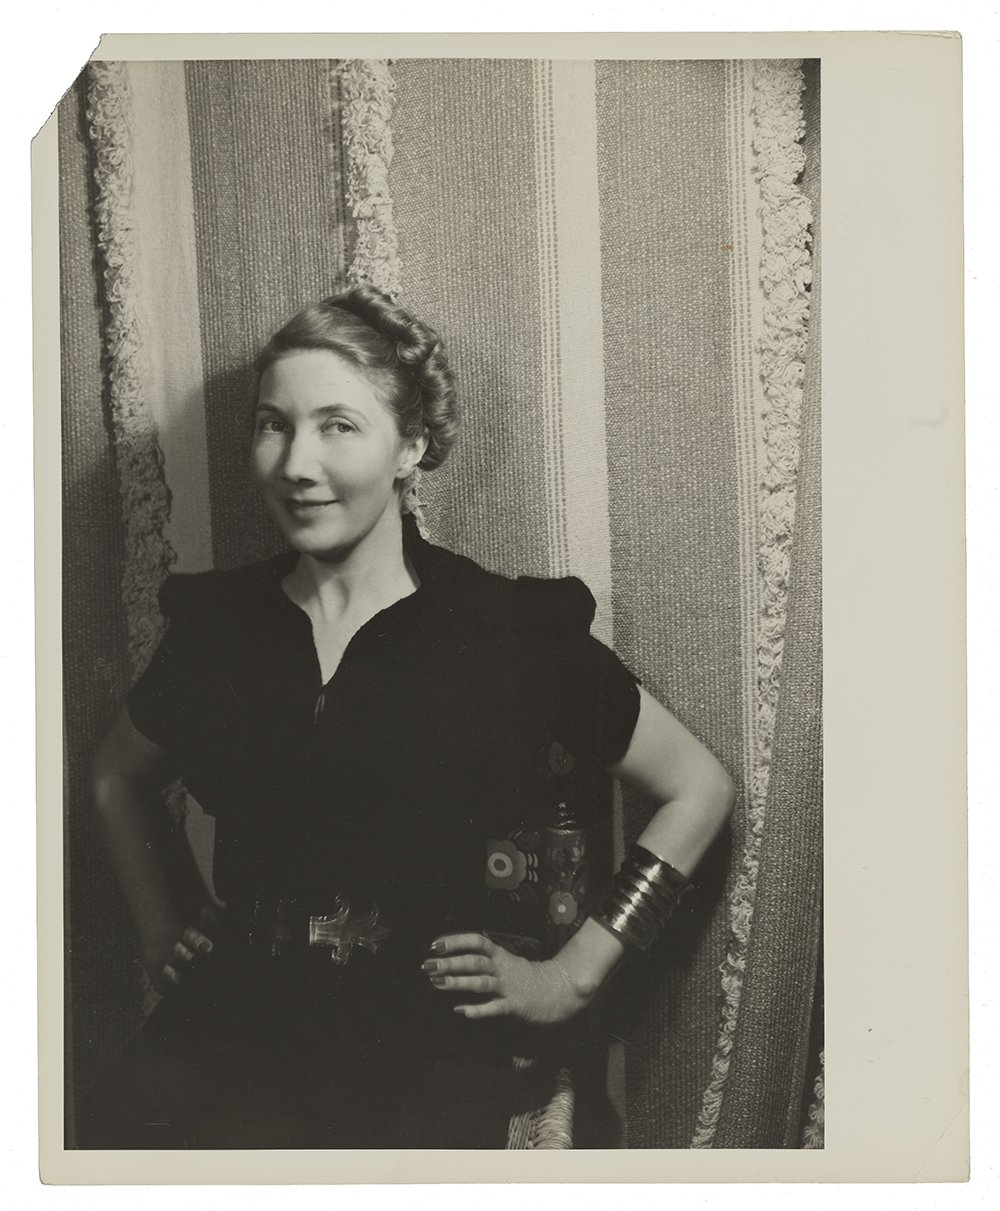 Woman in dark colored dress wearing a large cuff bracelet, photographed against one of her textile designs, which consists of various colors and textures in thick stripes.